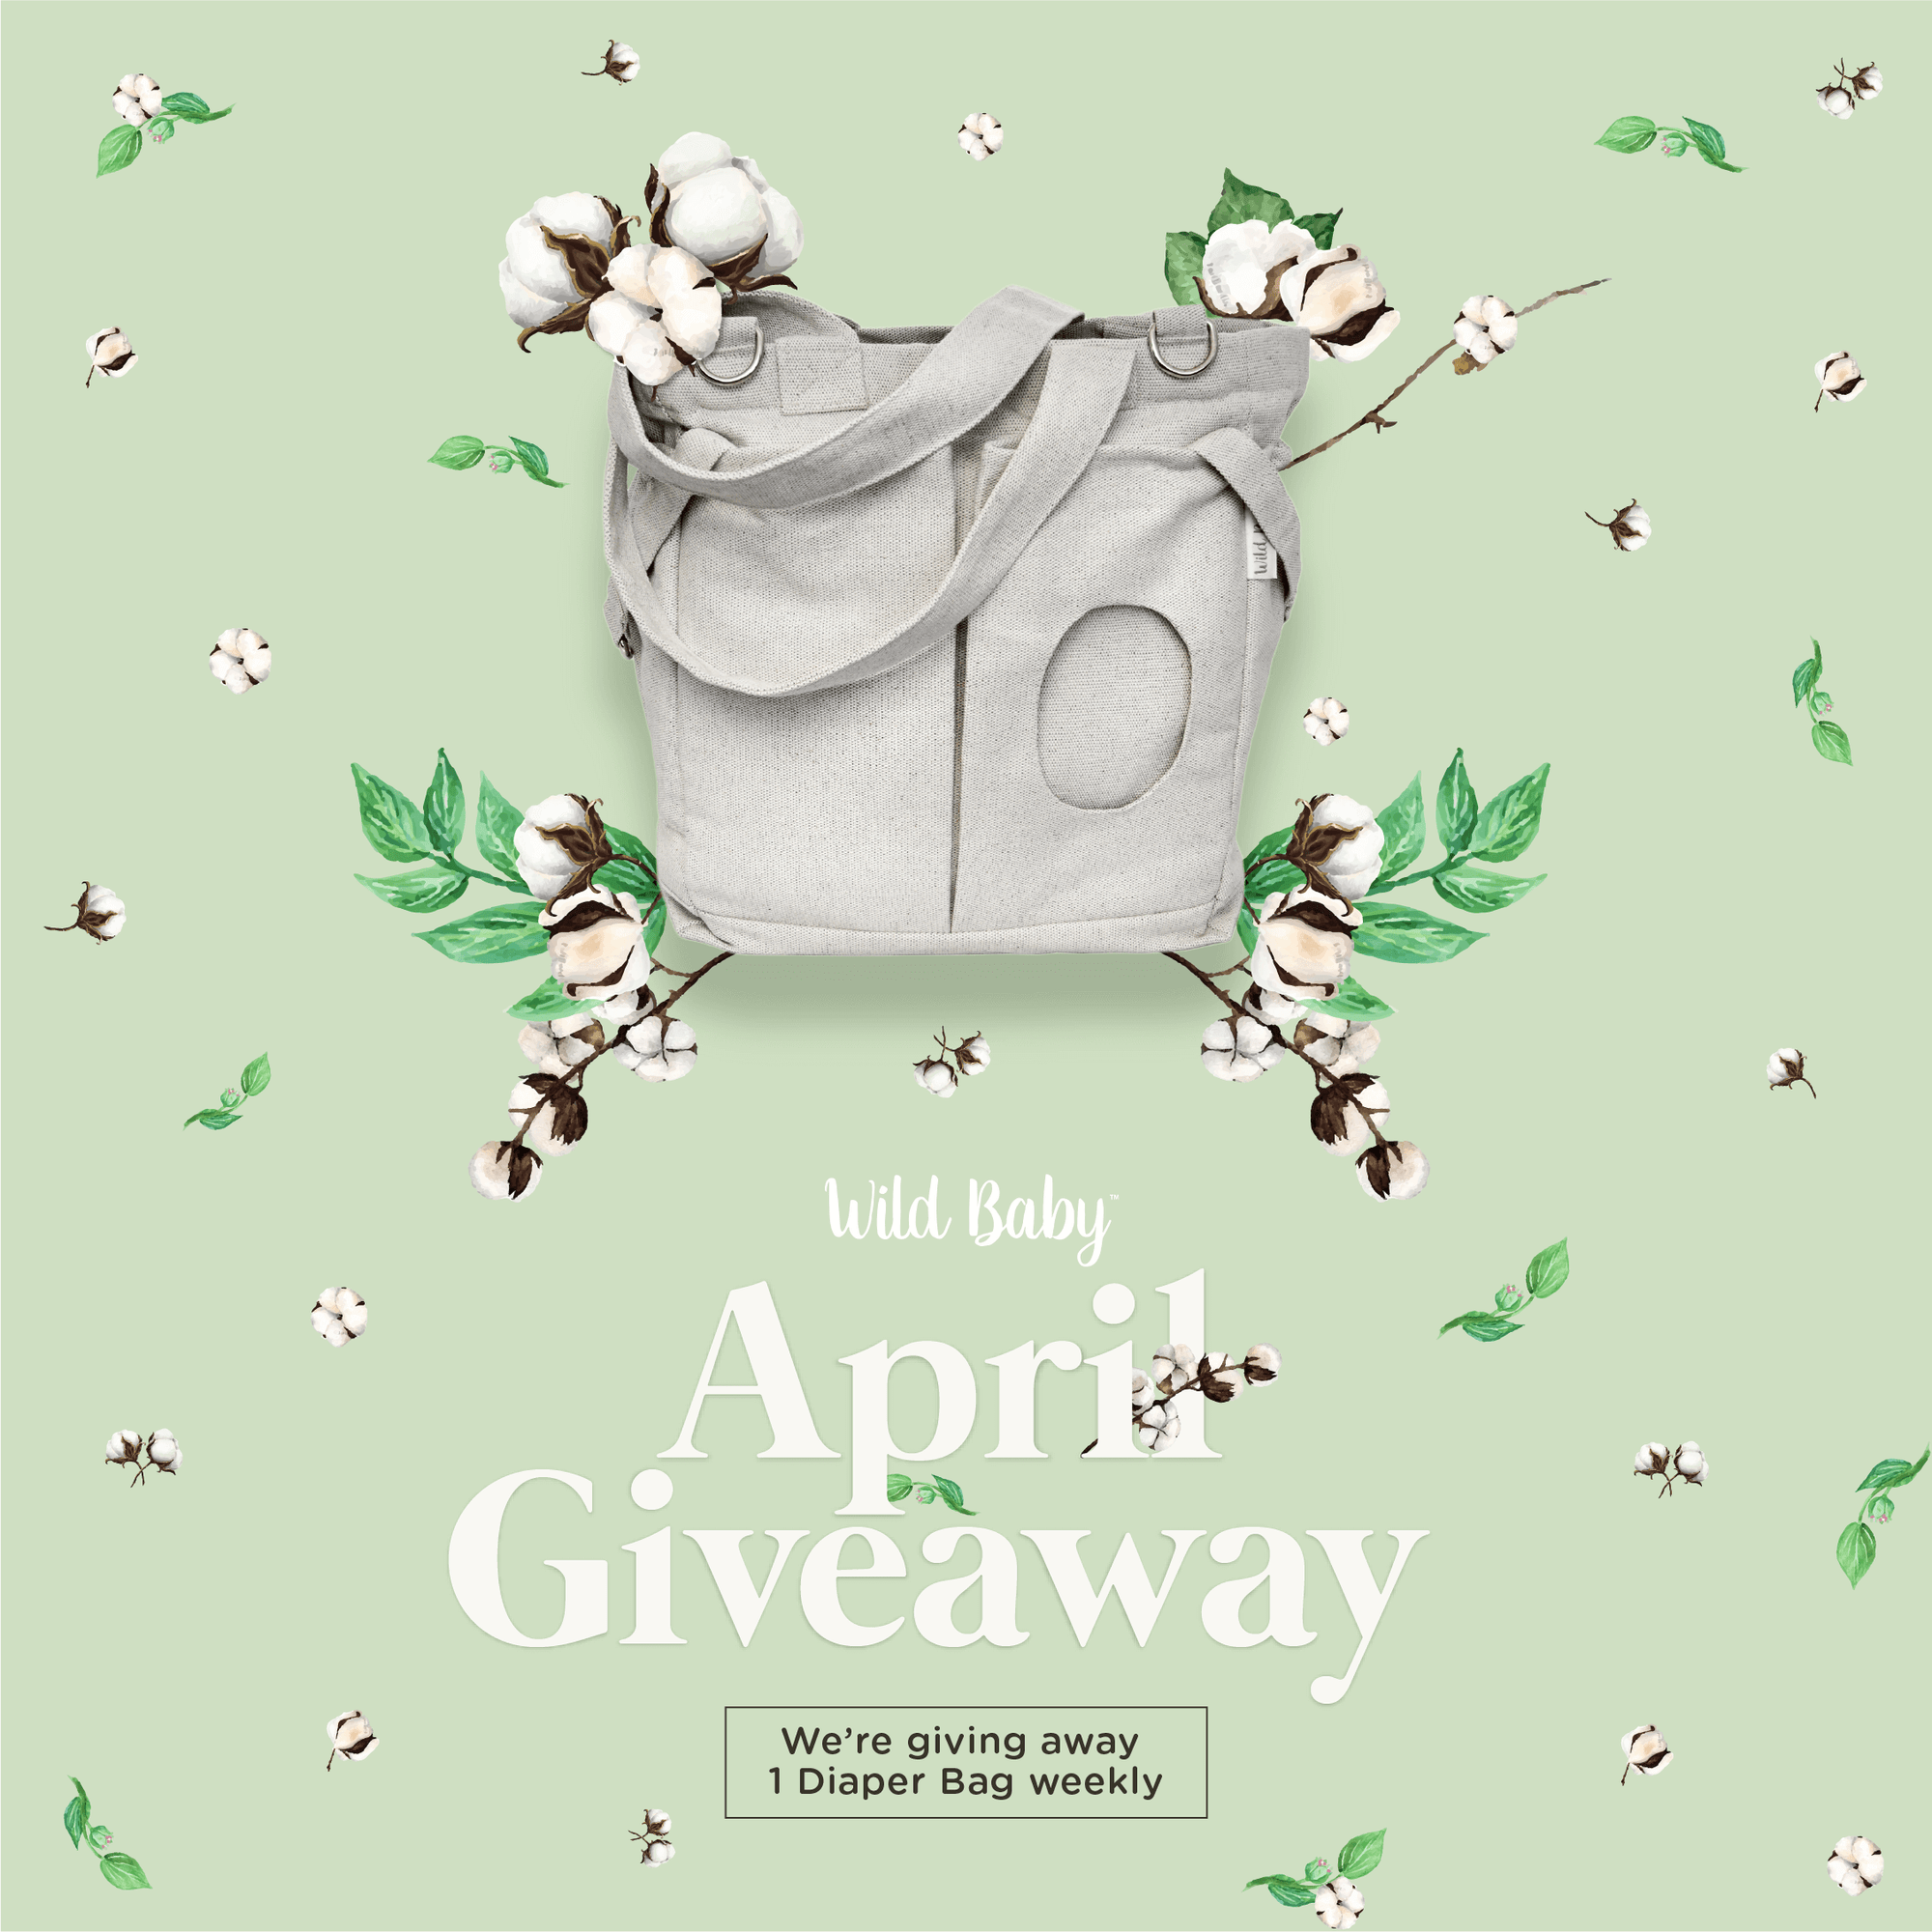 Wild Baby April 2018 Diaper Bag Giveaway